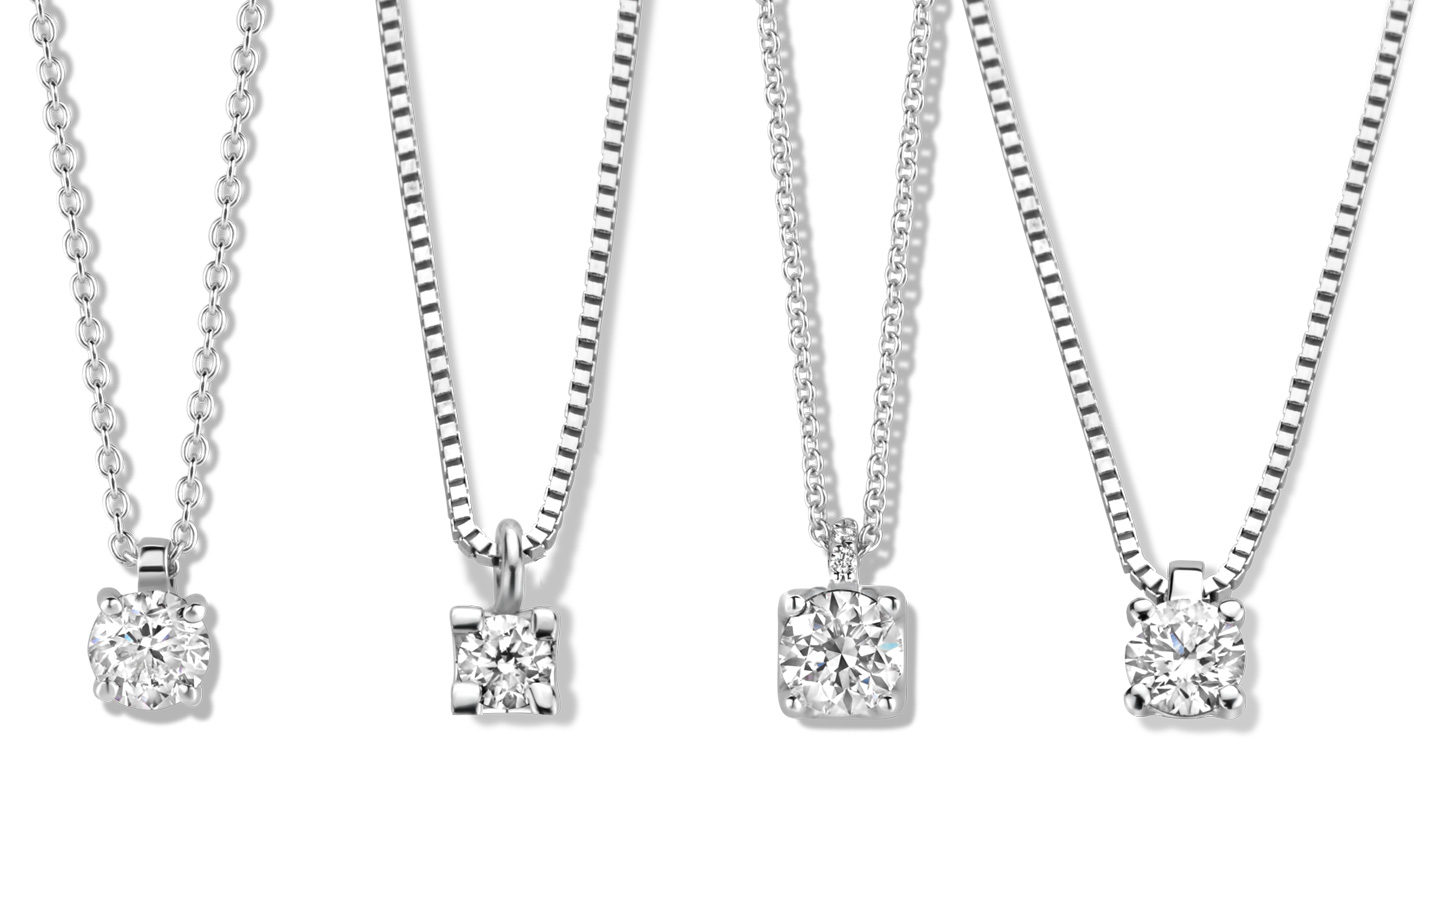 Collection-Tollet-Pendentifs a prix tendres